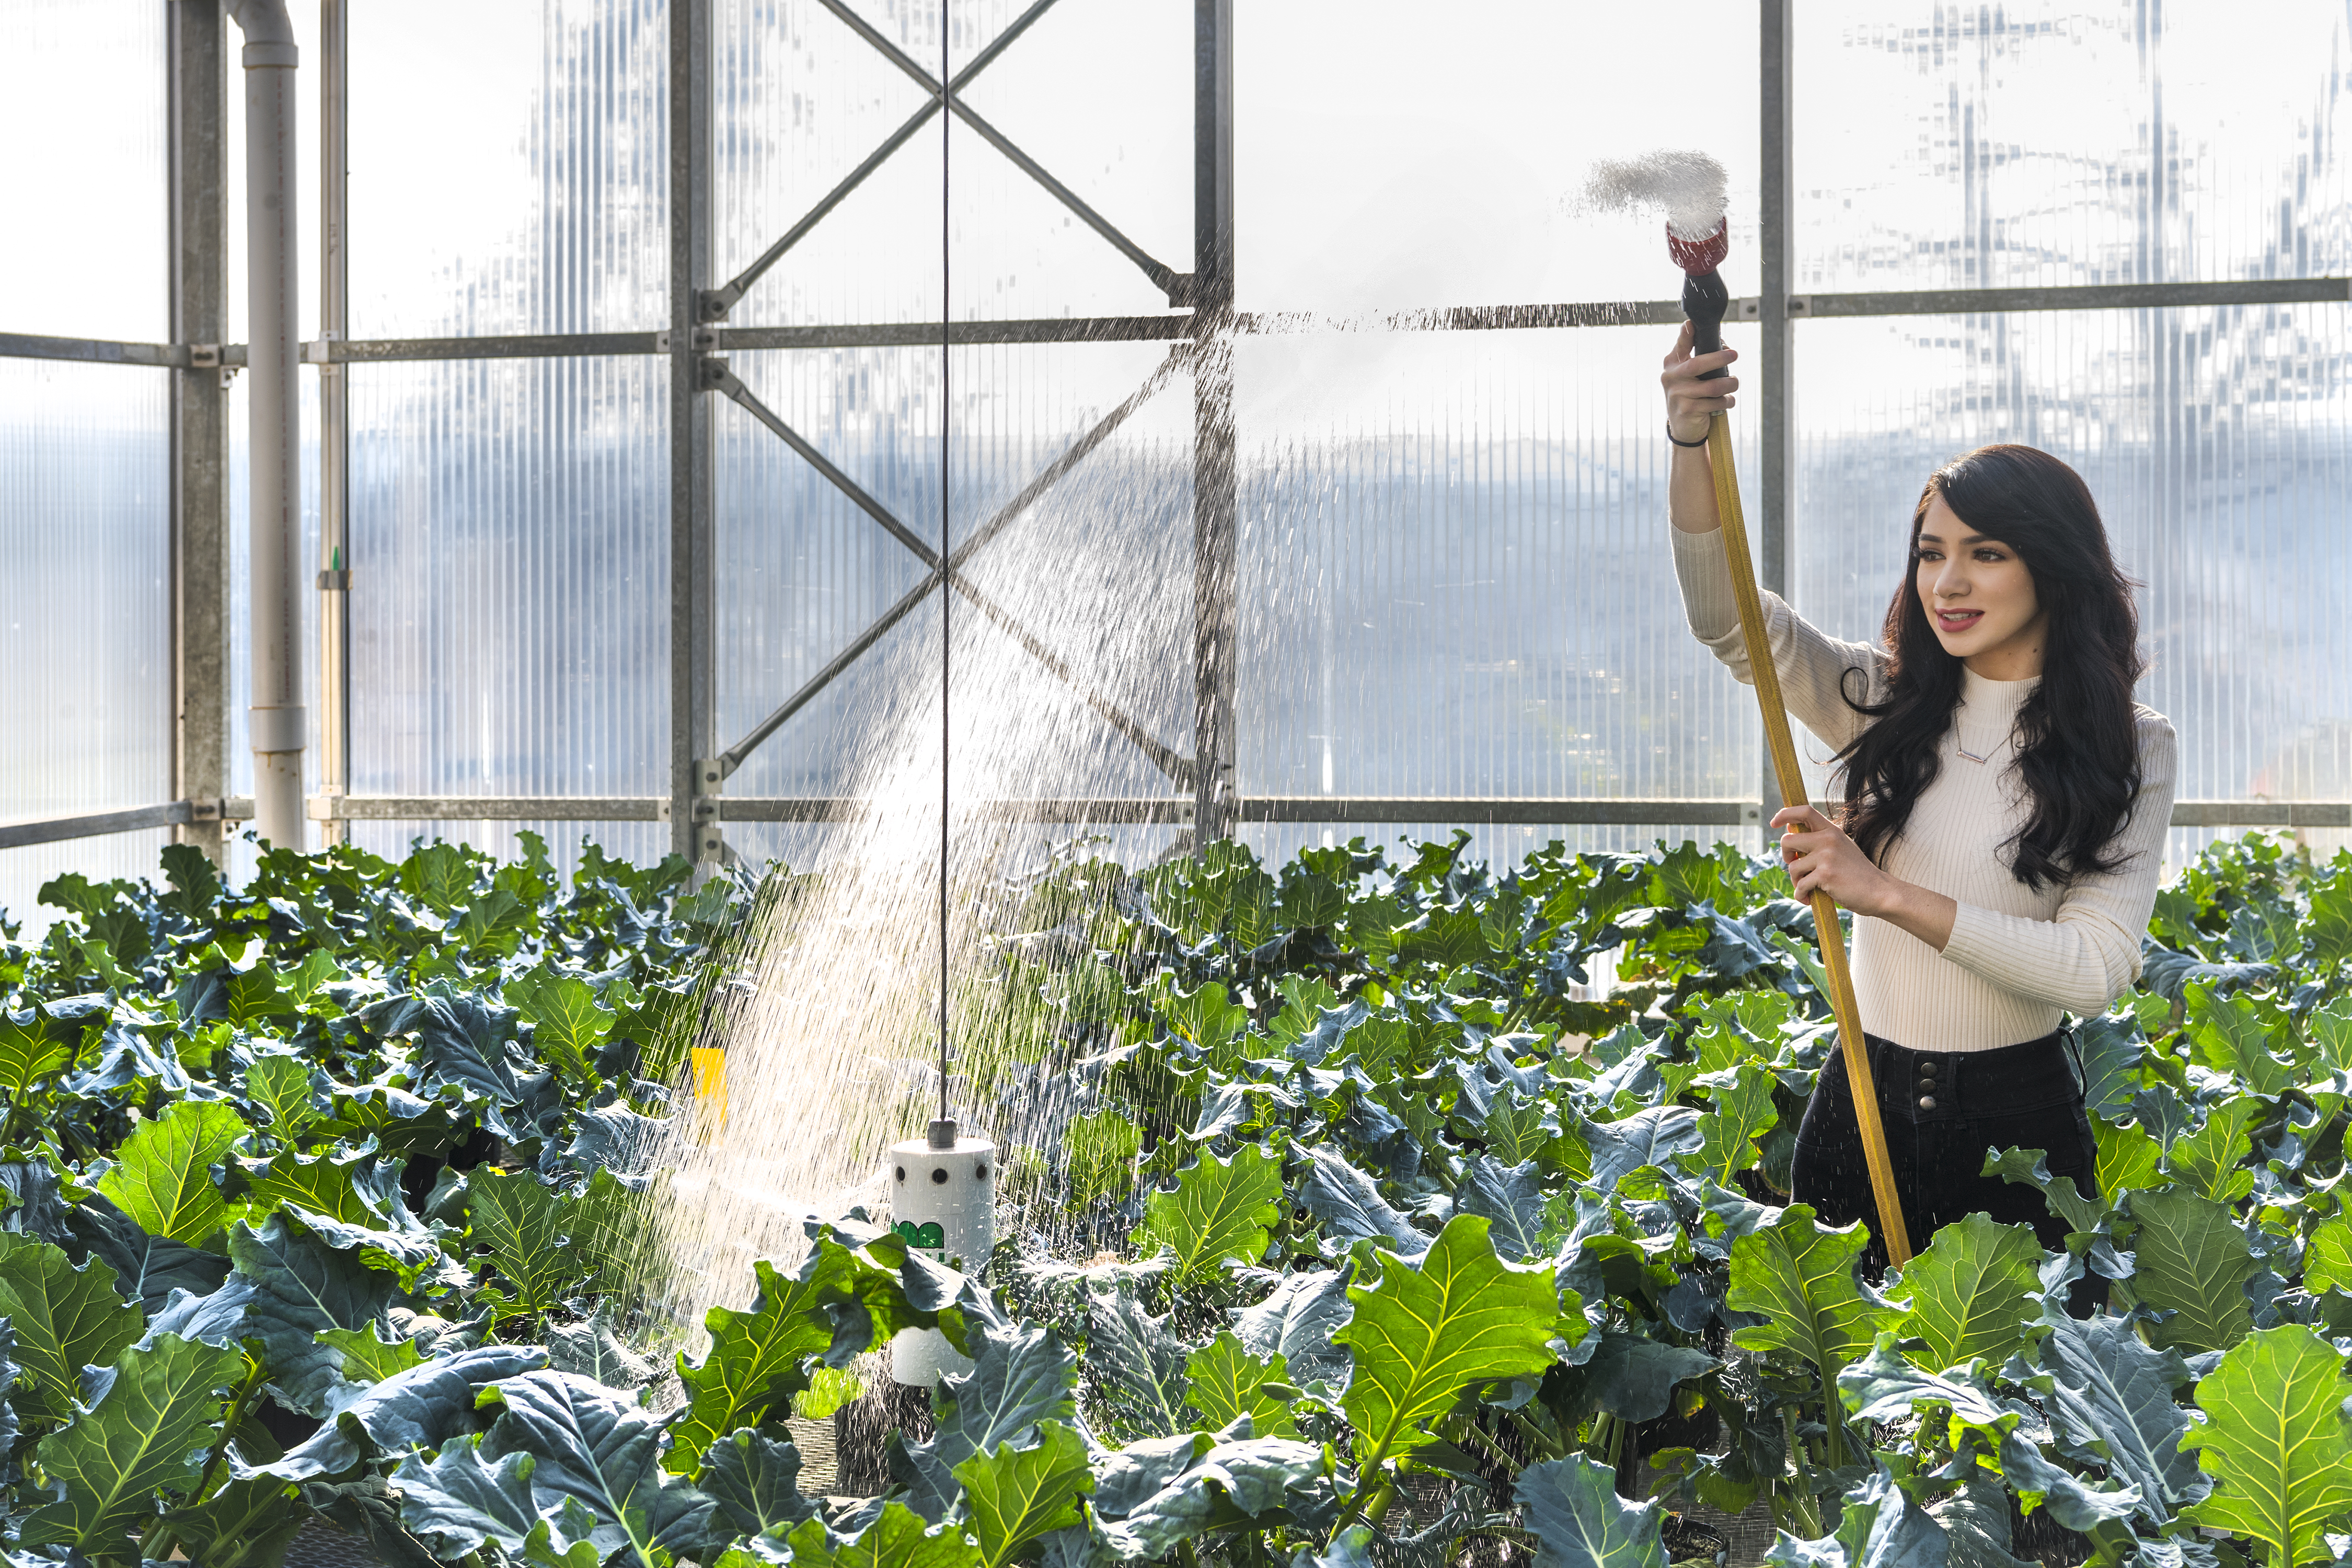 Student waters plants used for research in WVU greenhouse